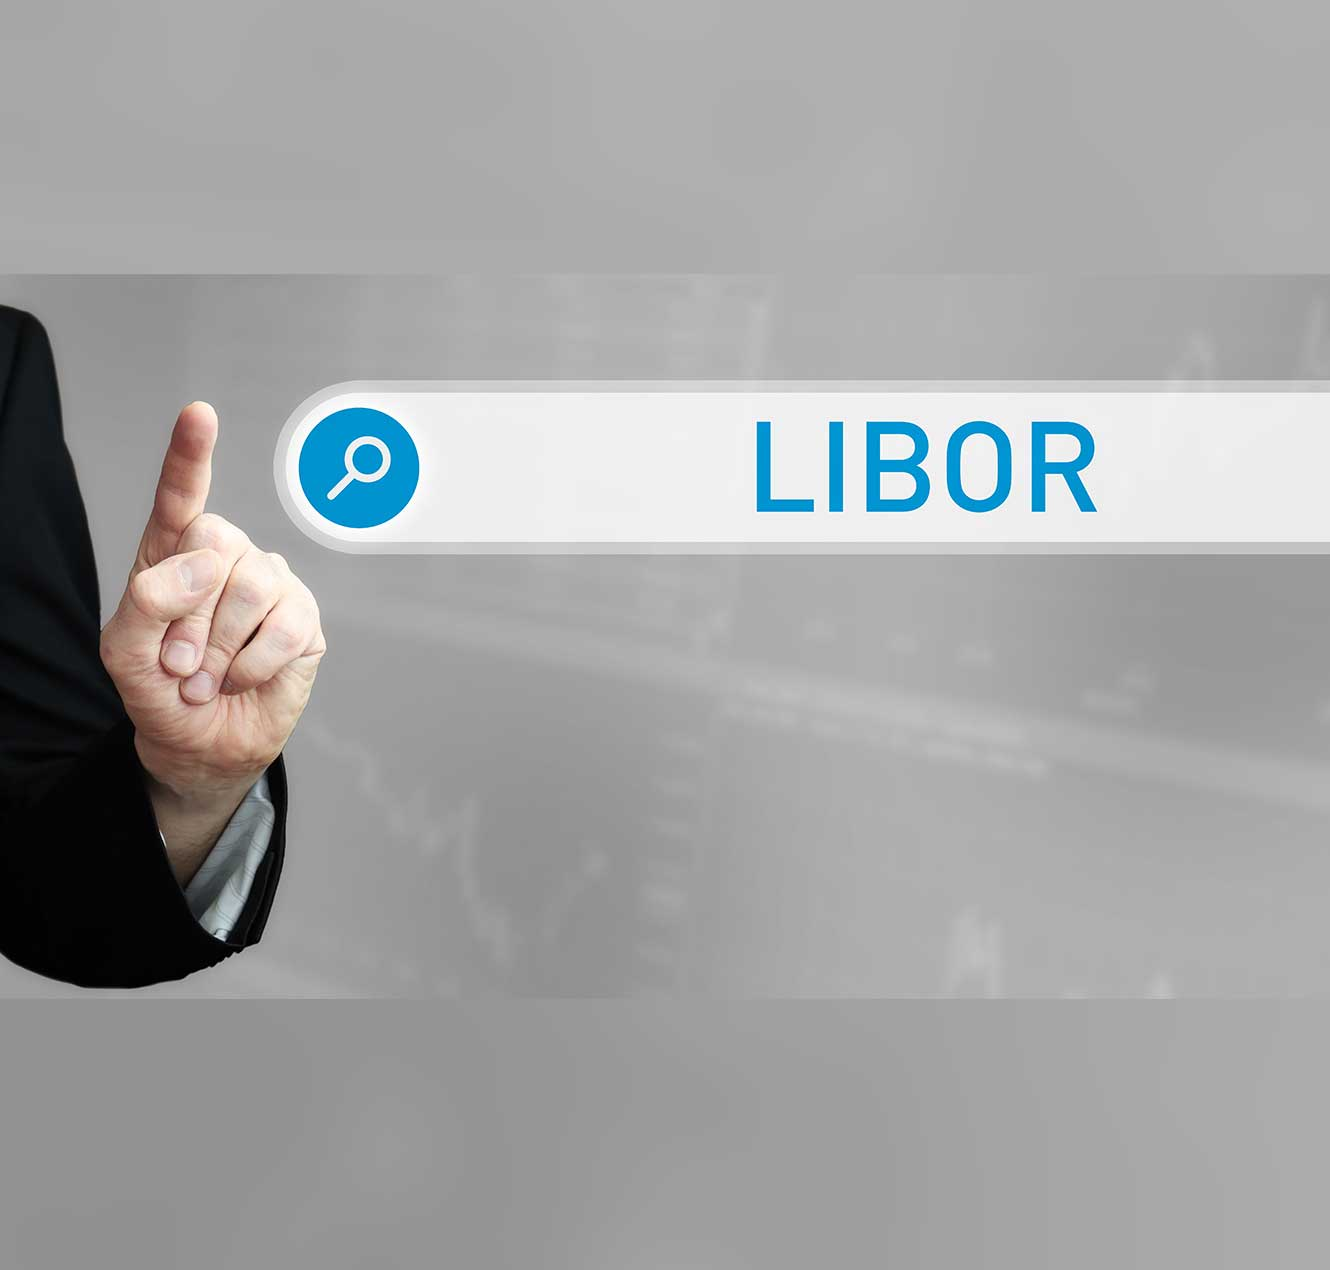 Search Term showing LIBOR